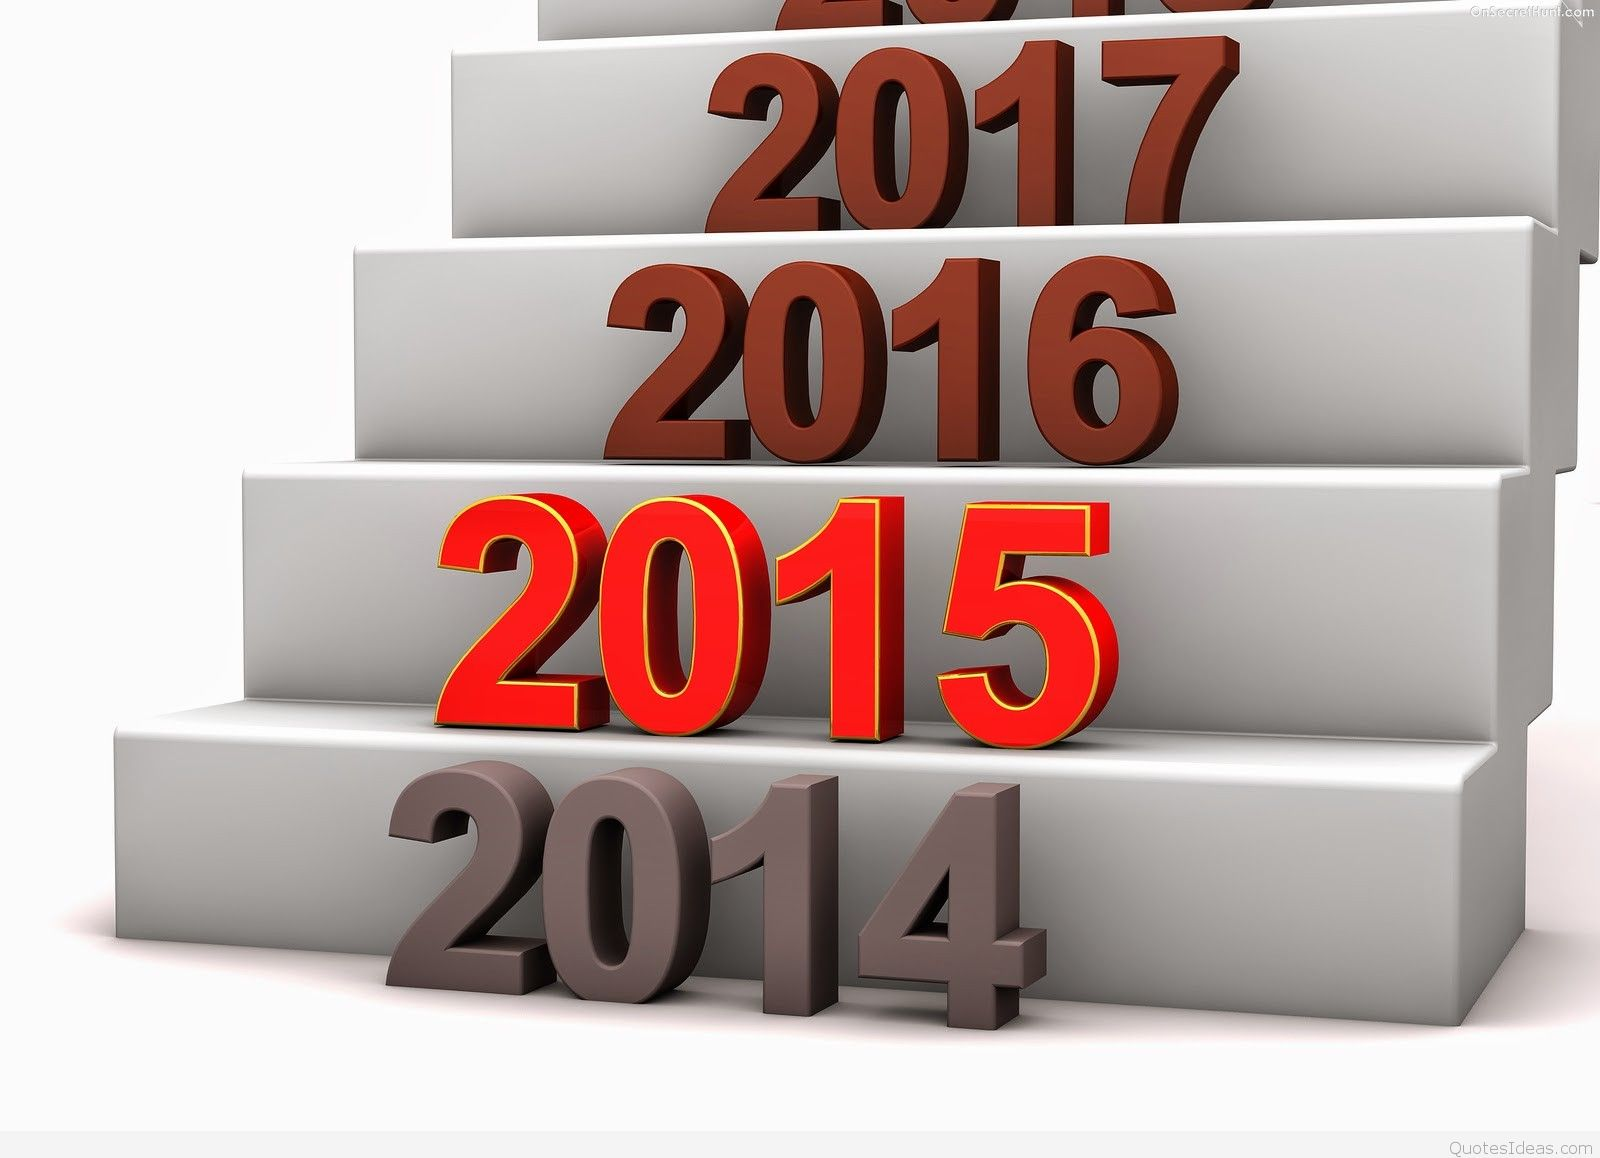 Free Download Wallpapers Happy New Year Hd 1600x1158 For Your Desktop Mobile Tablet Explore 71 Wallpaper 2015 Happy New Year Latest Wallpaper 2015 New Wallpaper 2015 For Desktop Happy New Year 2016 Wallpaper